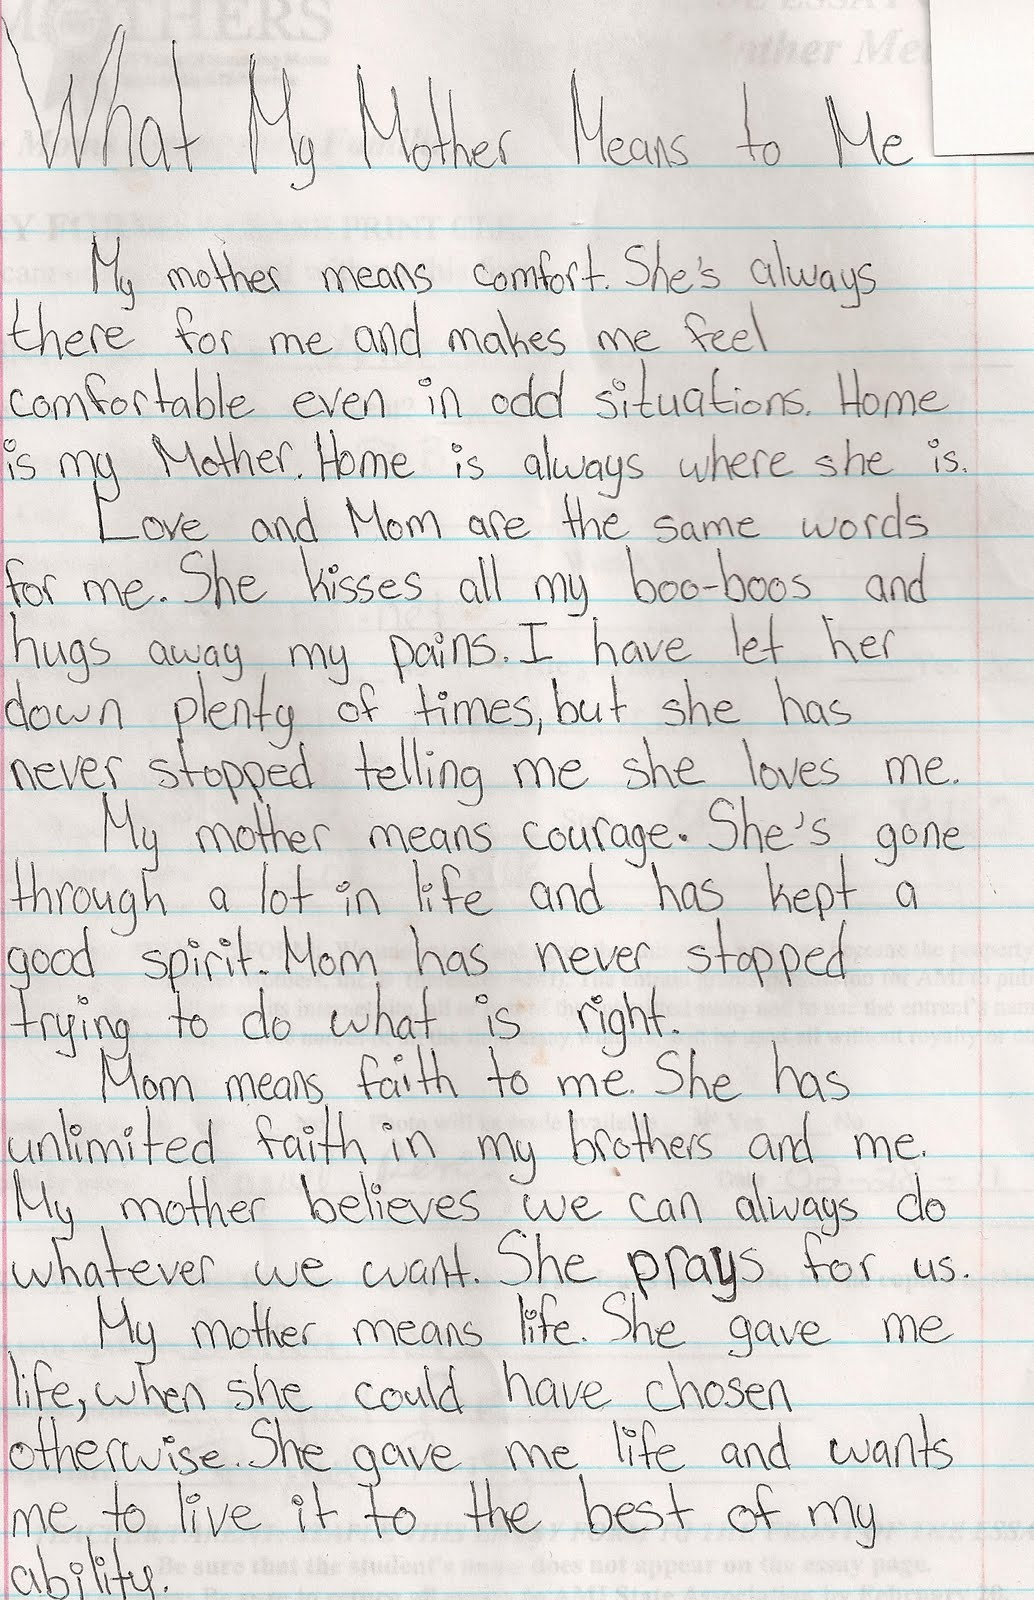 014 Essay About Admire My Mother Example Phenomenal Full